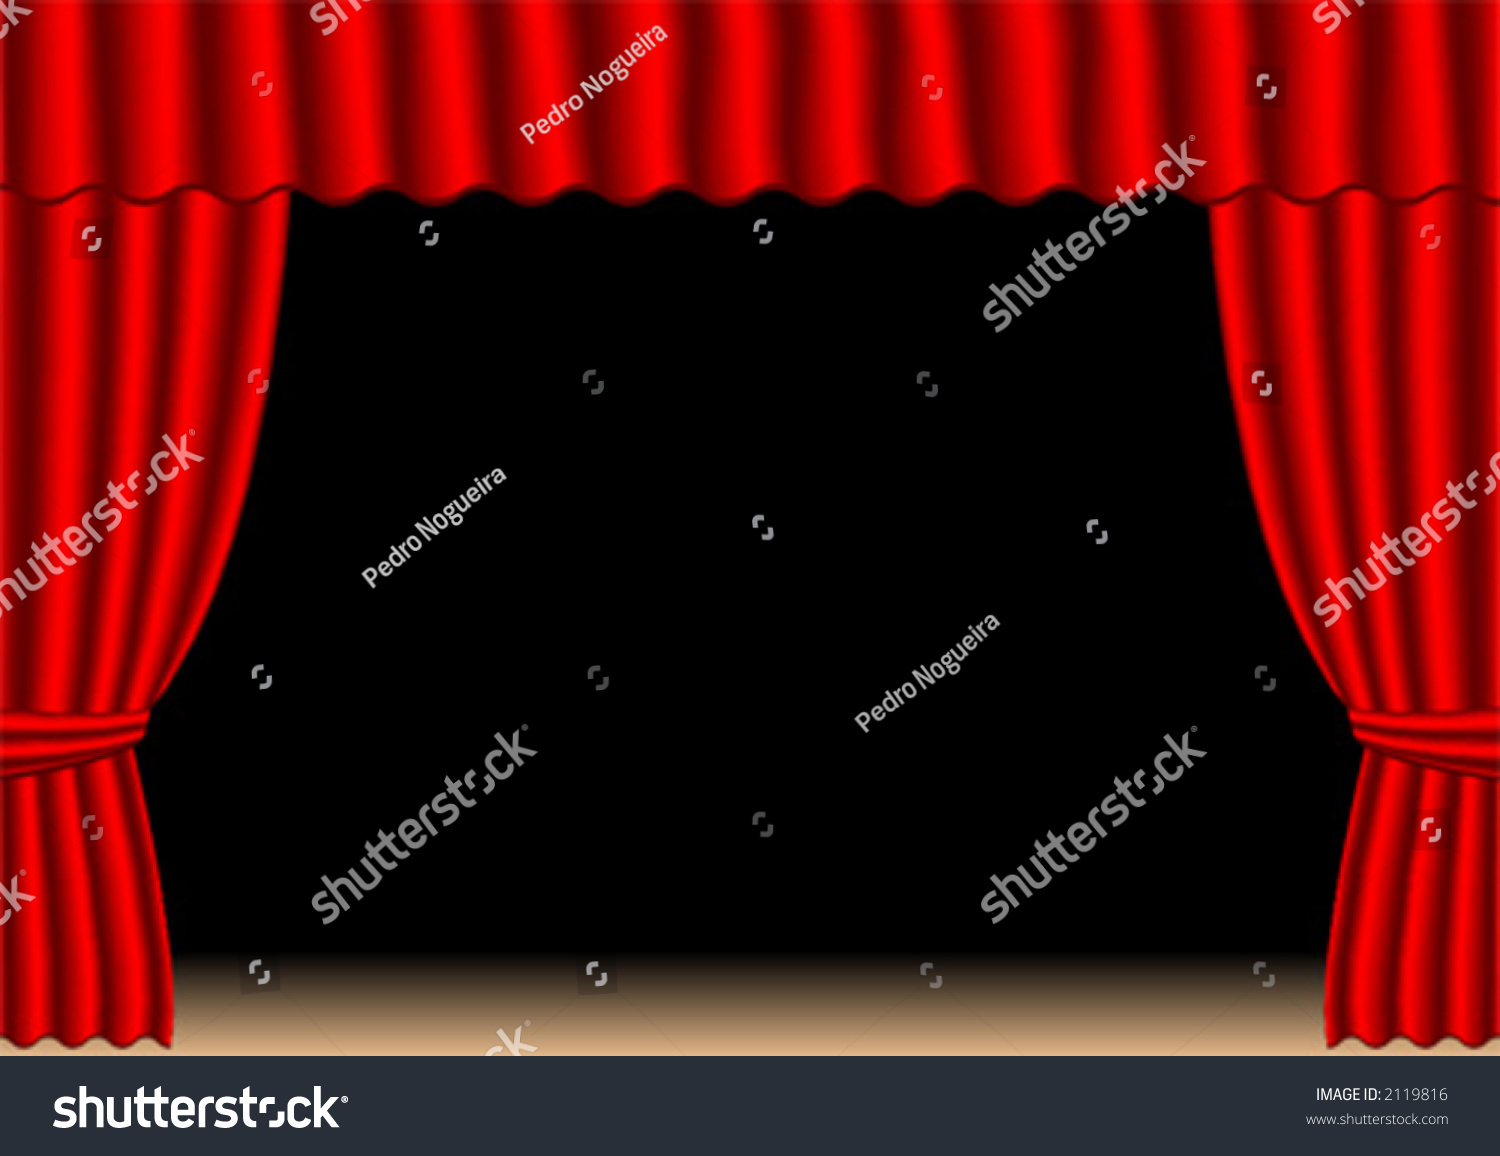 Black stage curtains black stage curtain - Old Fashion Theater Curtains Over Stage And Black Background